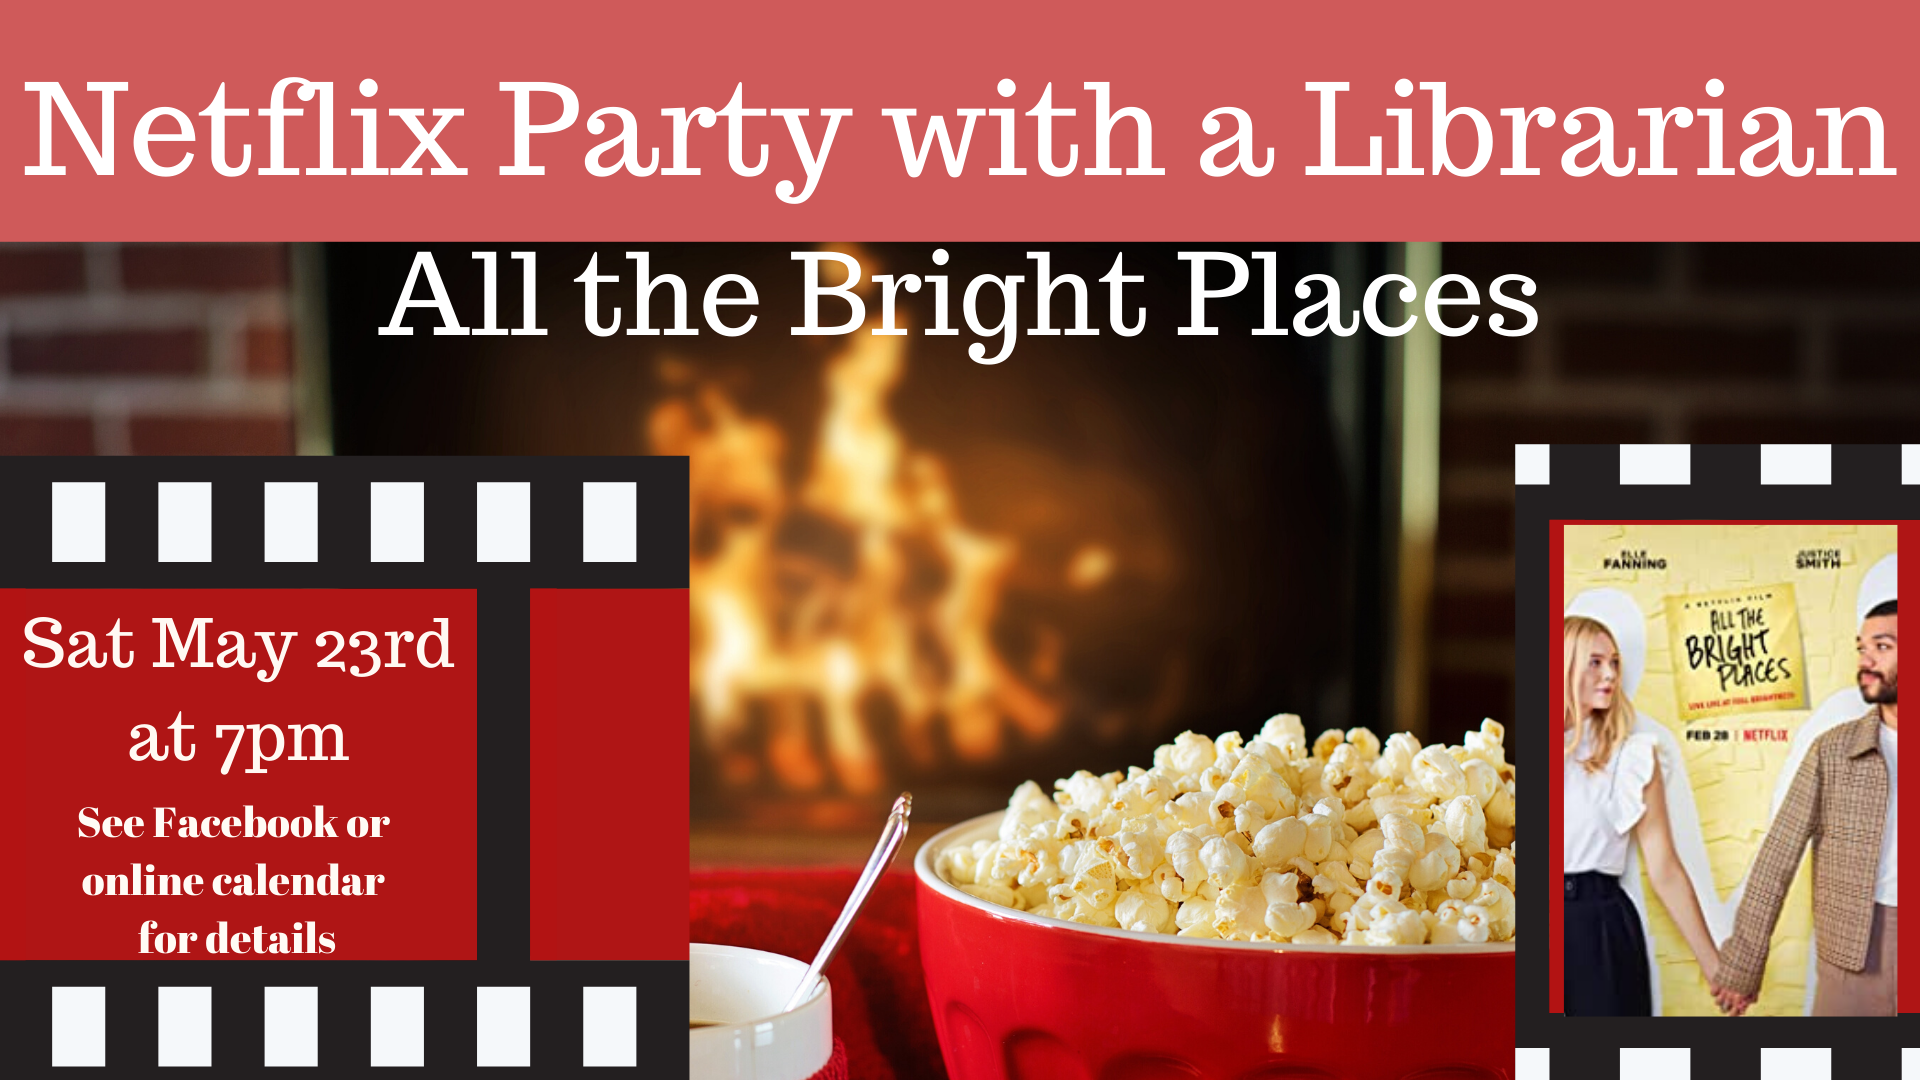 Netflix Party with a Librarian: All the Bright Places